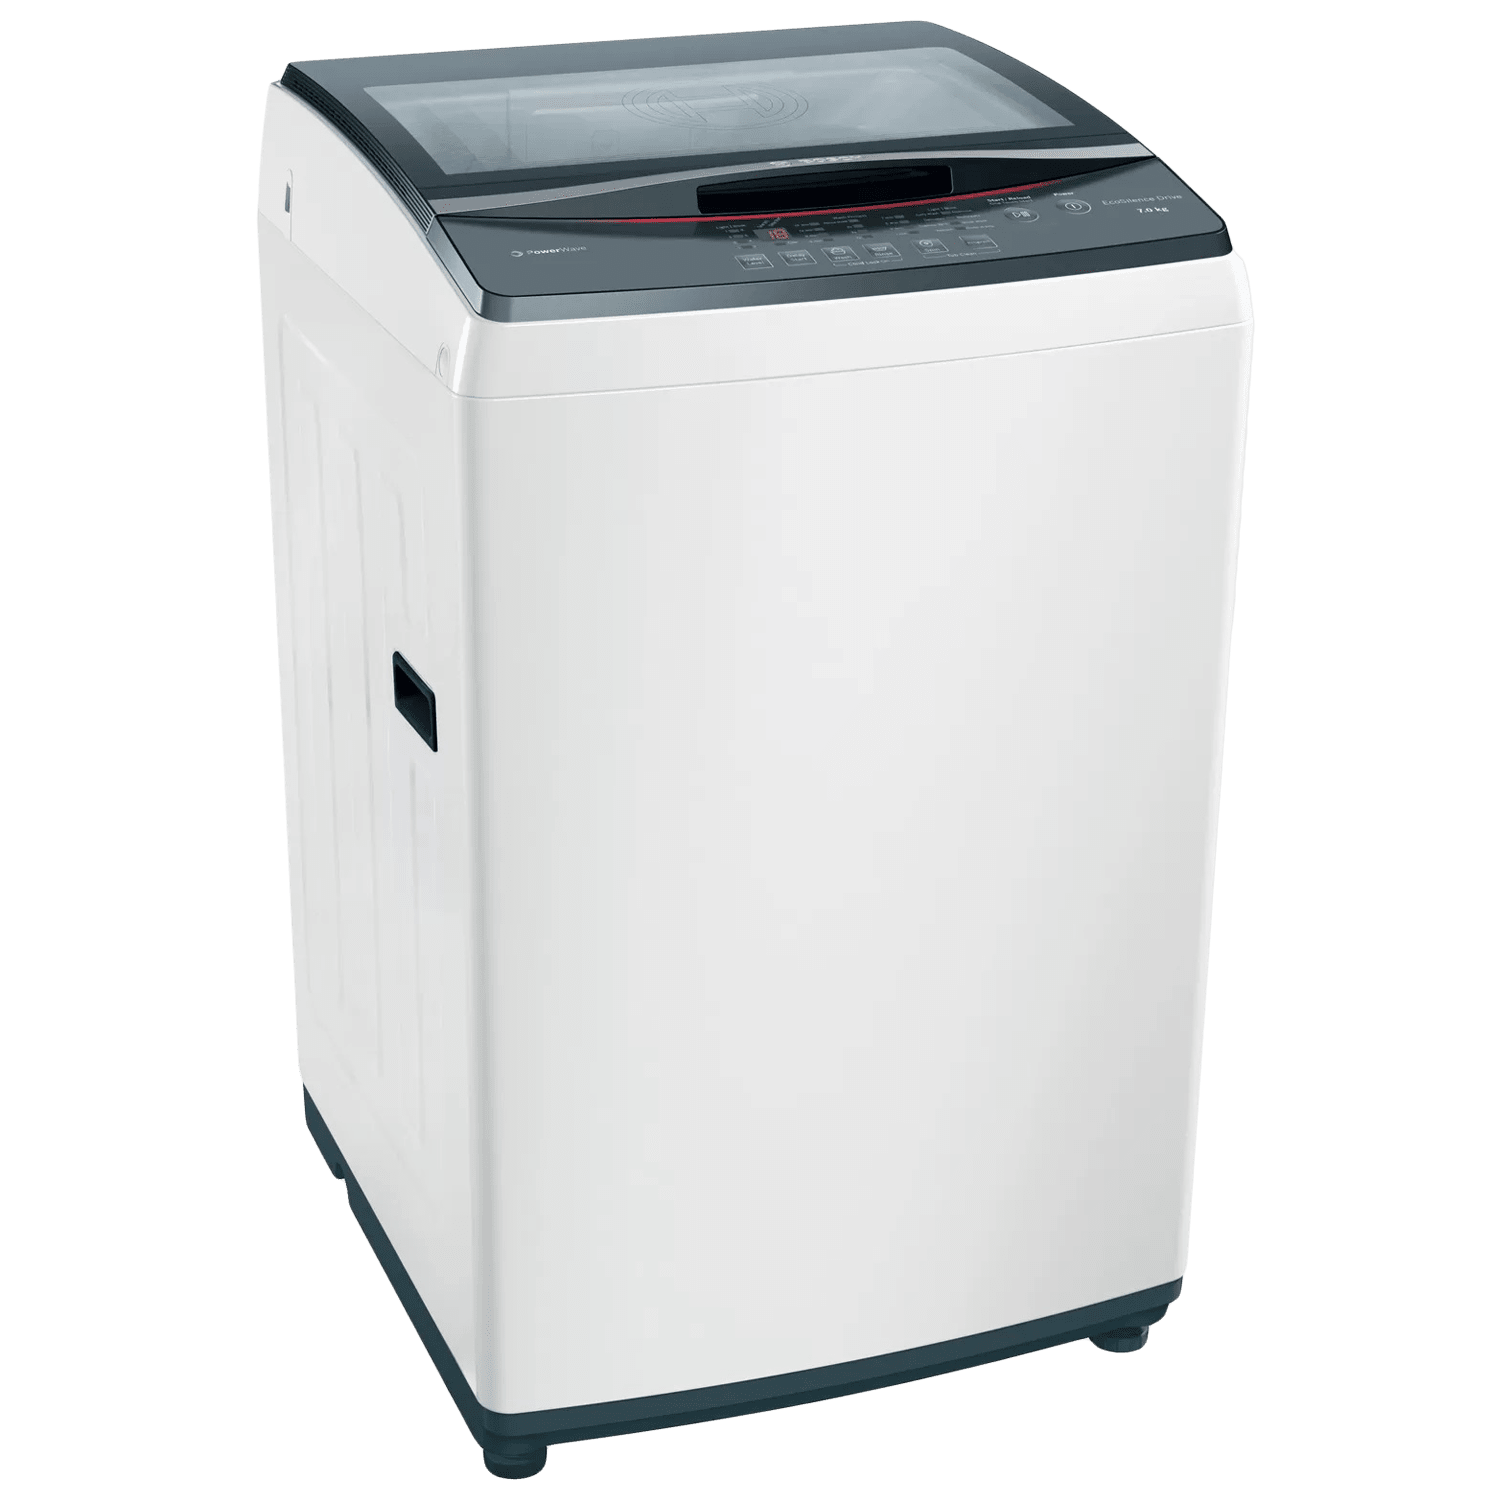 Bosch Serie 4 7 kg 5 Star Fully Automatic Top Load Washing Machine (EcoSilence Drive Friction-Free Motor, WOE704W1IN, White)